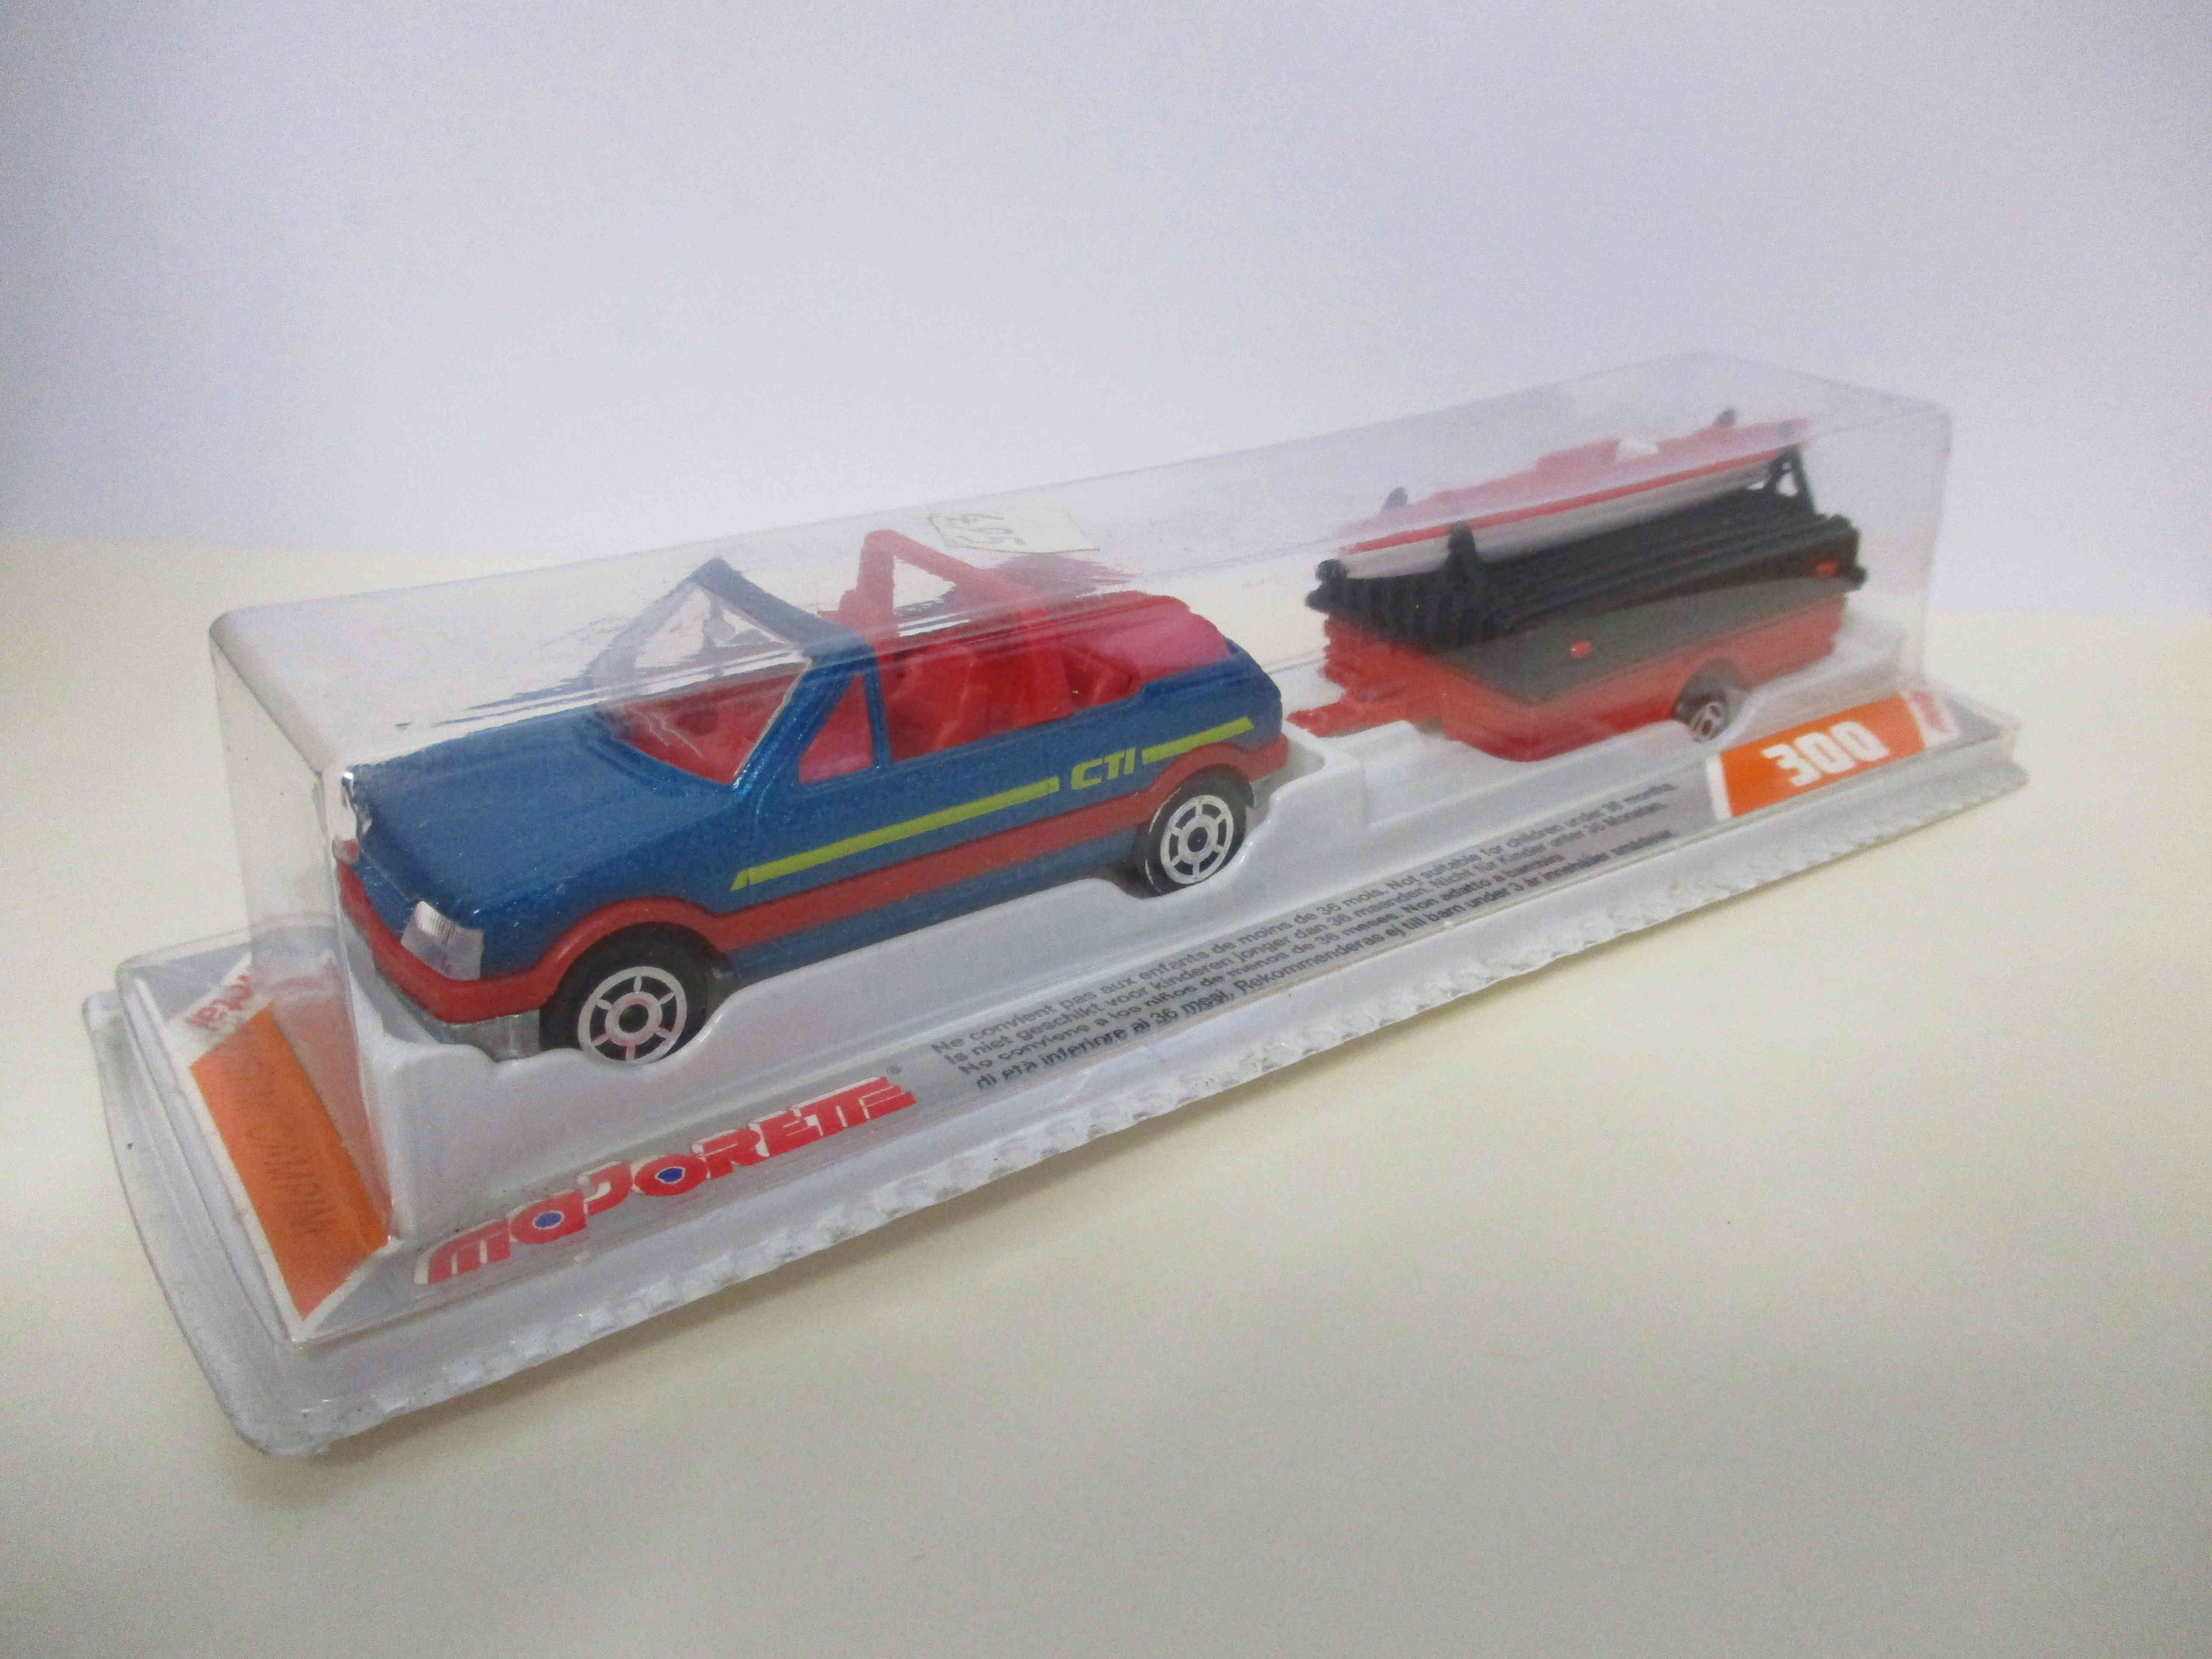 N°372 PEUGEOT 205 GTI CABRIOLET + REMORQUE CAMPING Img_4716